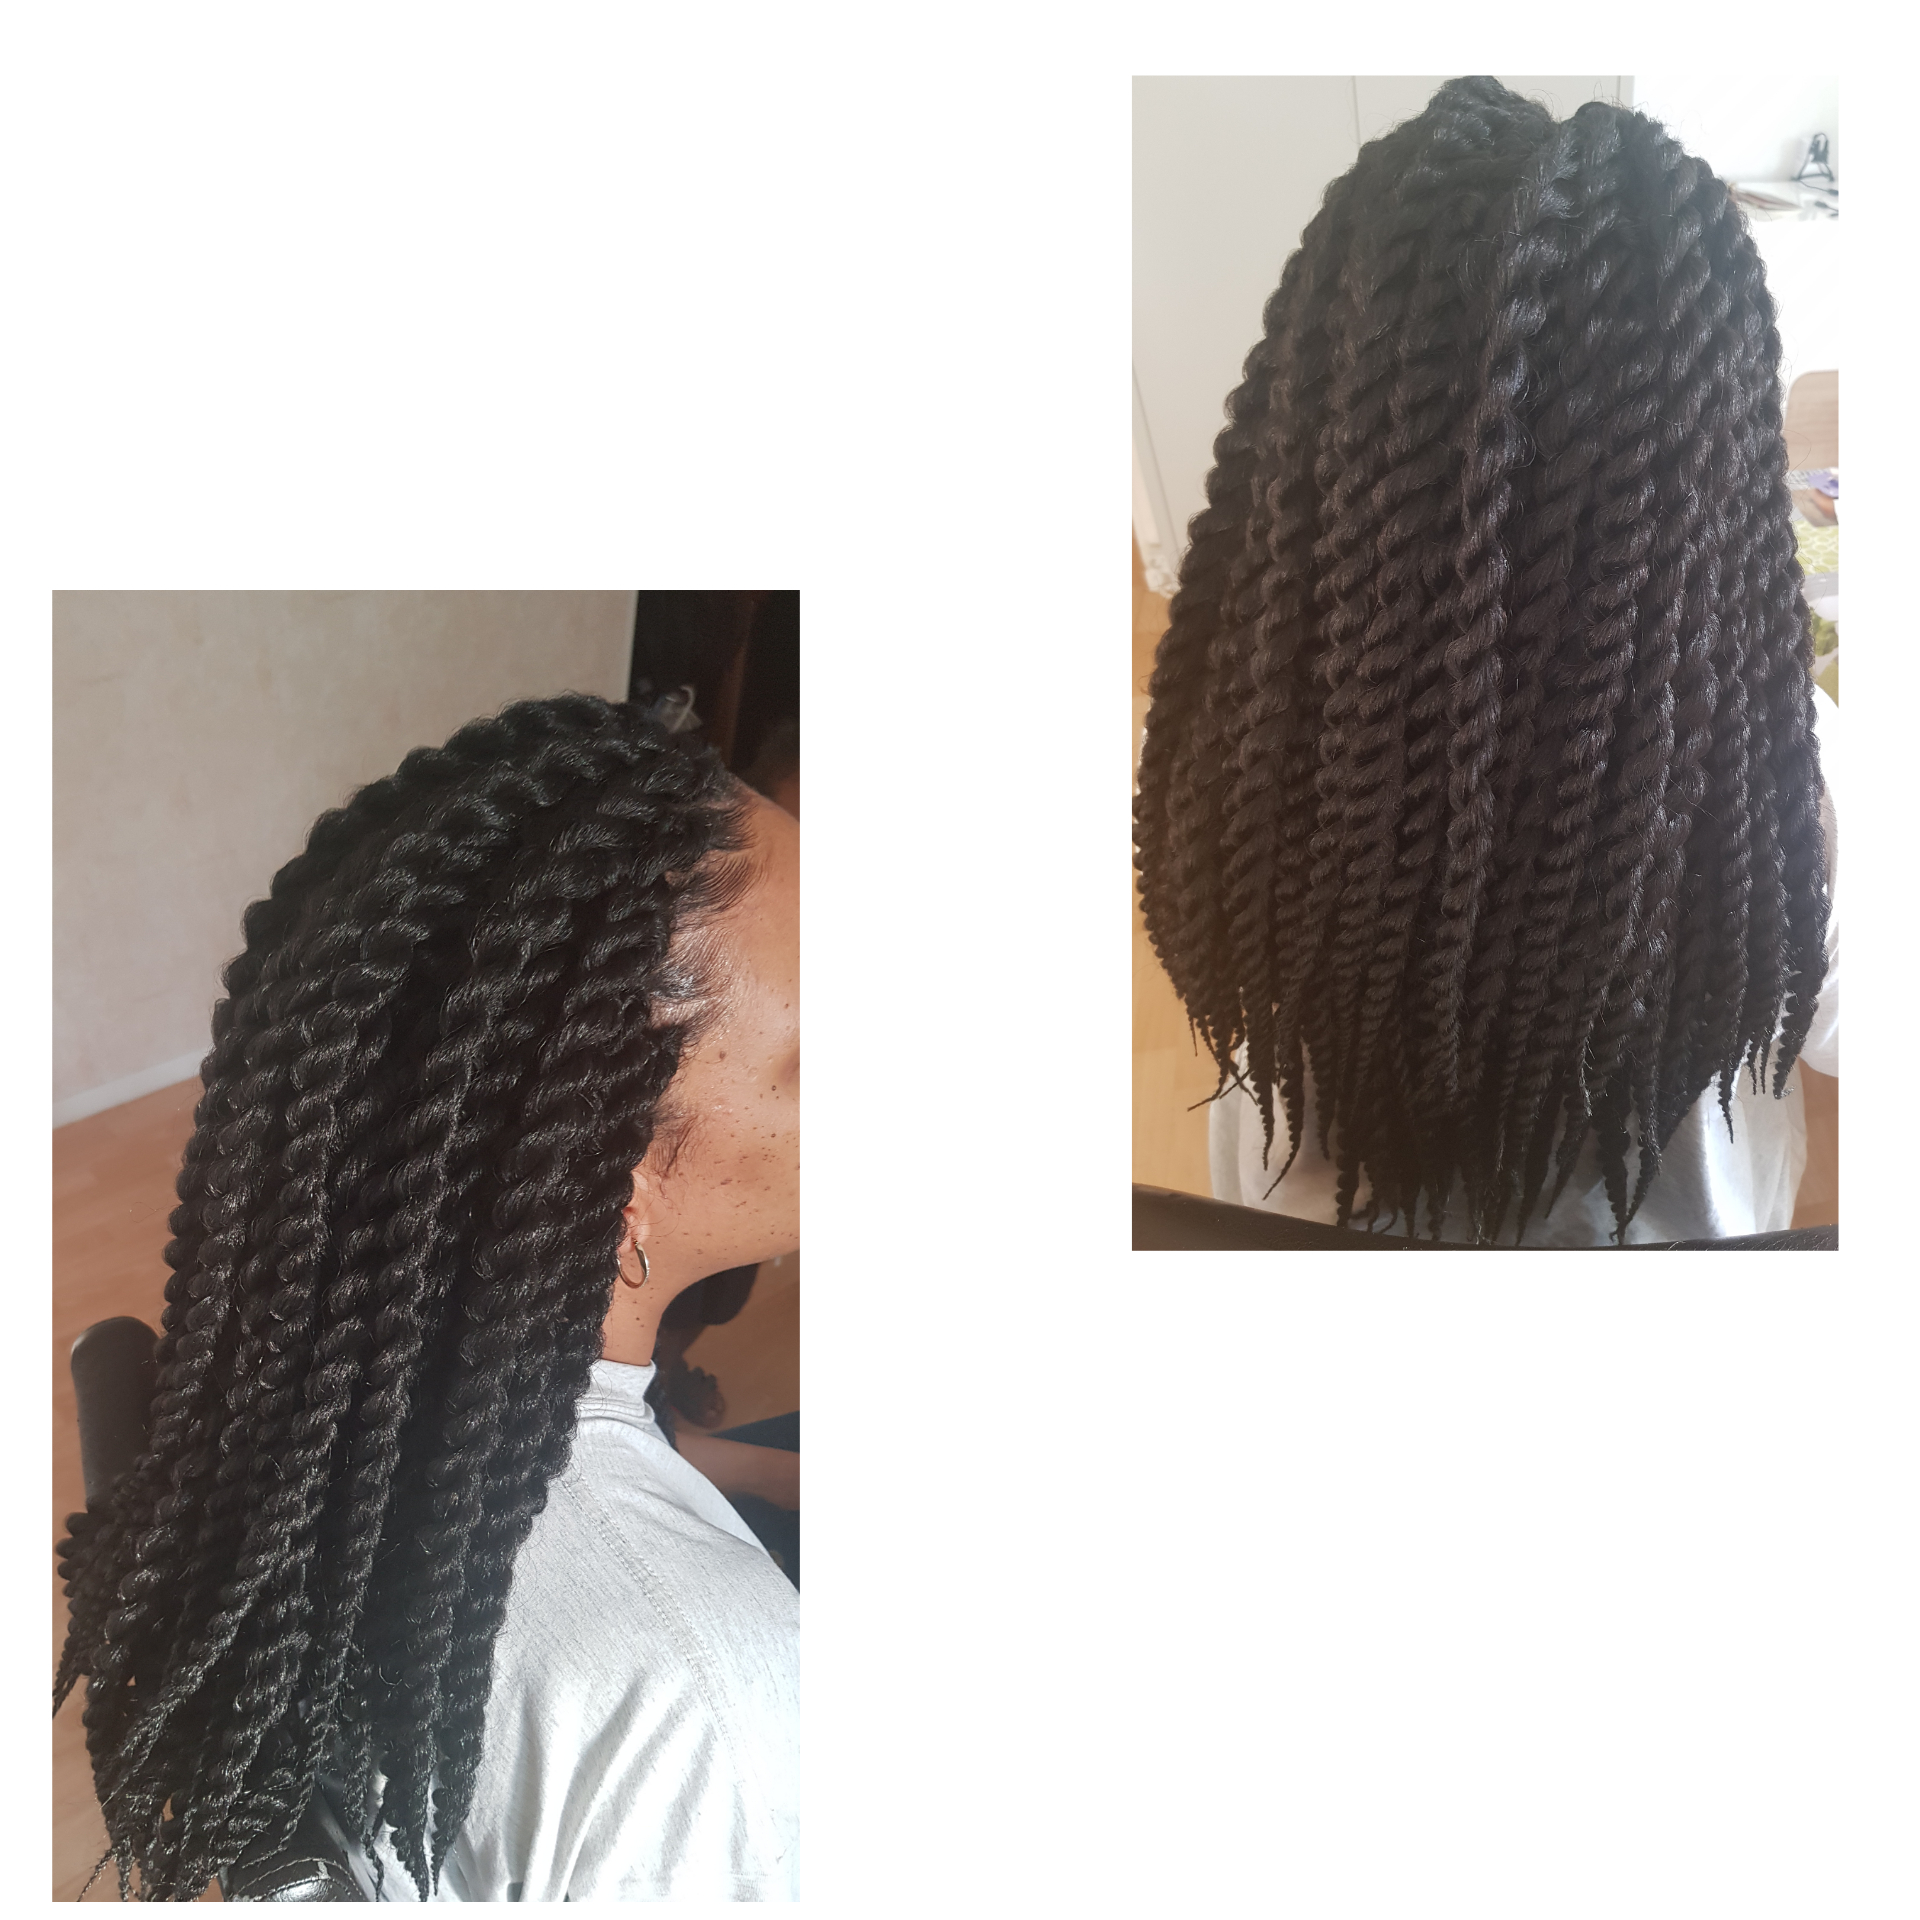 salon de coiffure afro tresse tresses box braids crochet braids vanilles tissages paris 75 77 78 91 92 93 94 95 PASXKVFO